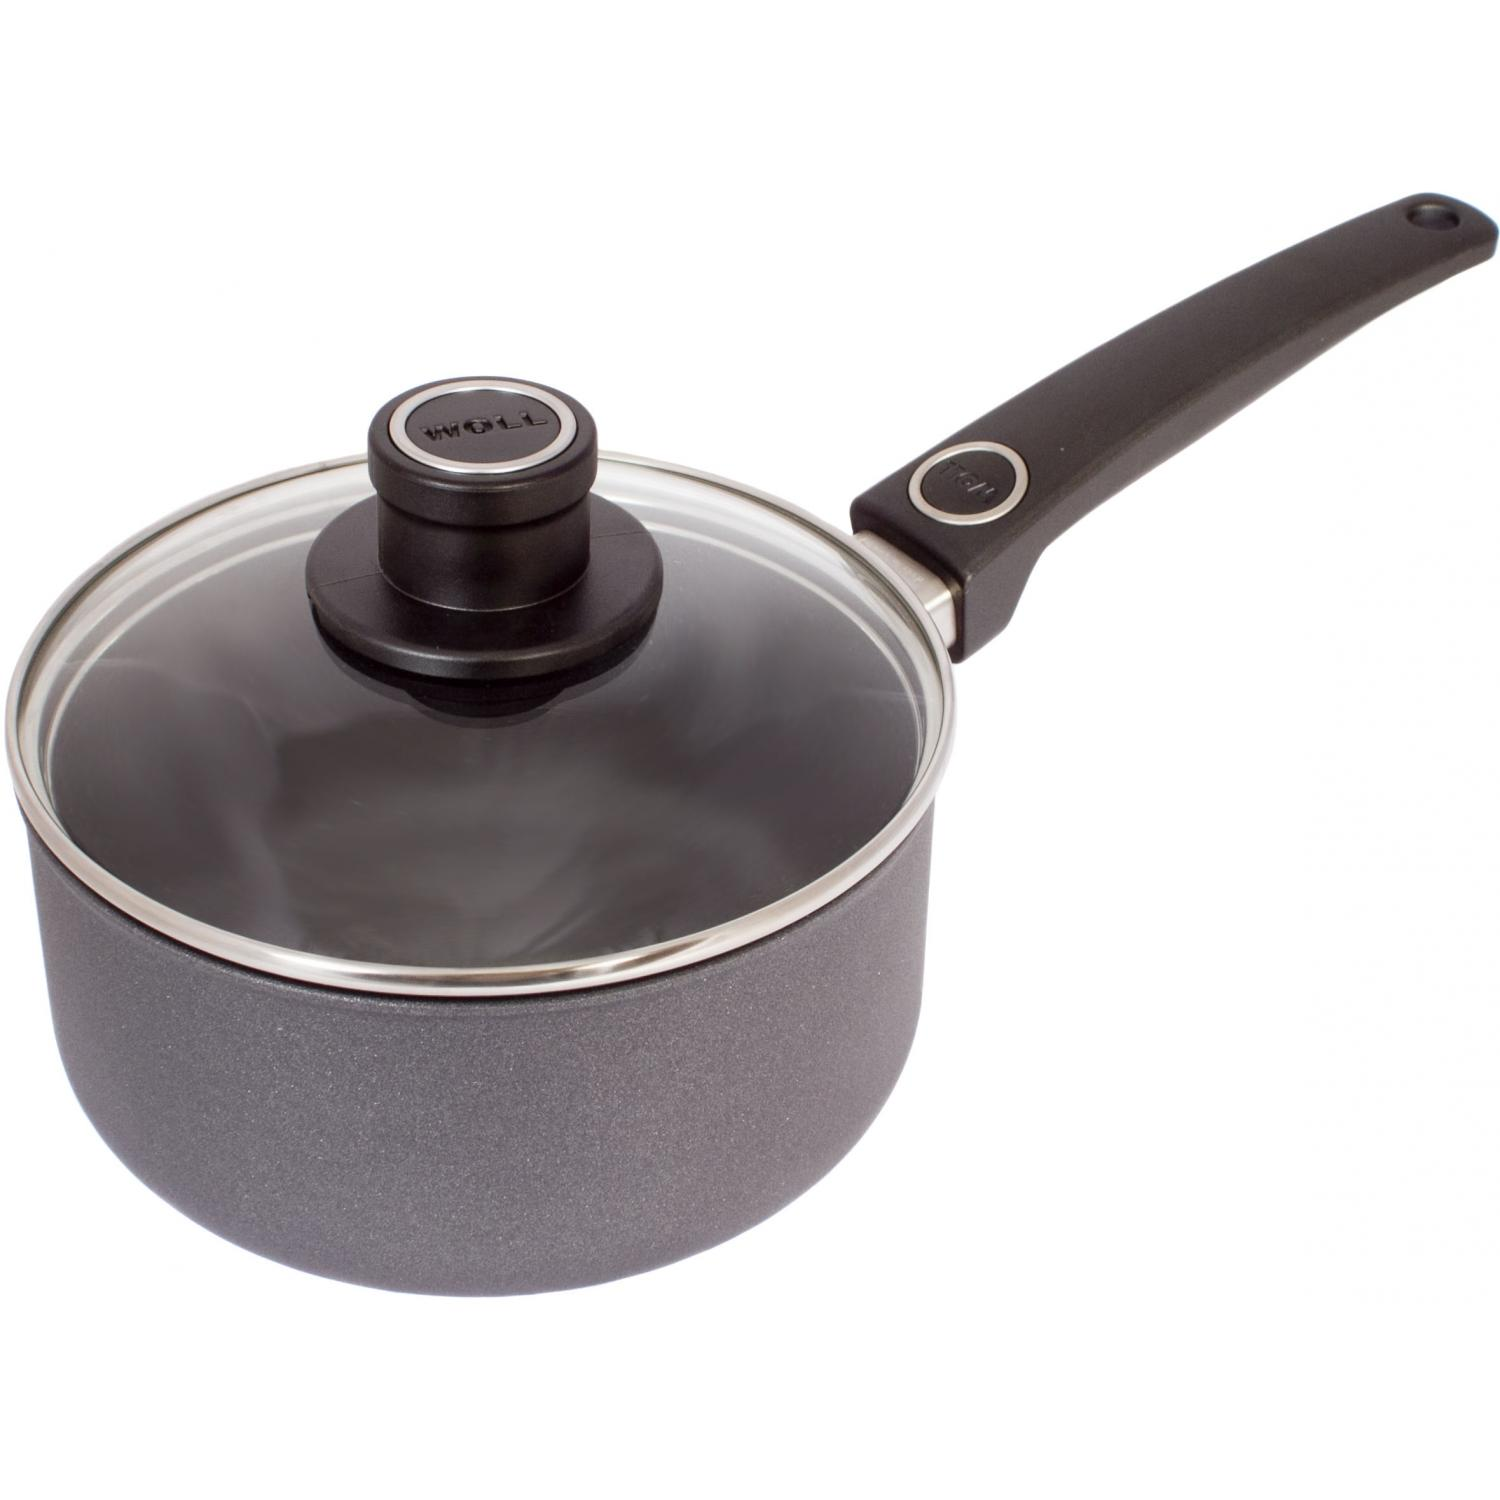 Woll Diamond Plus Induction 7 Inch 2 1 Quart Nonstick